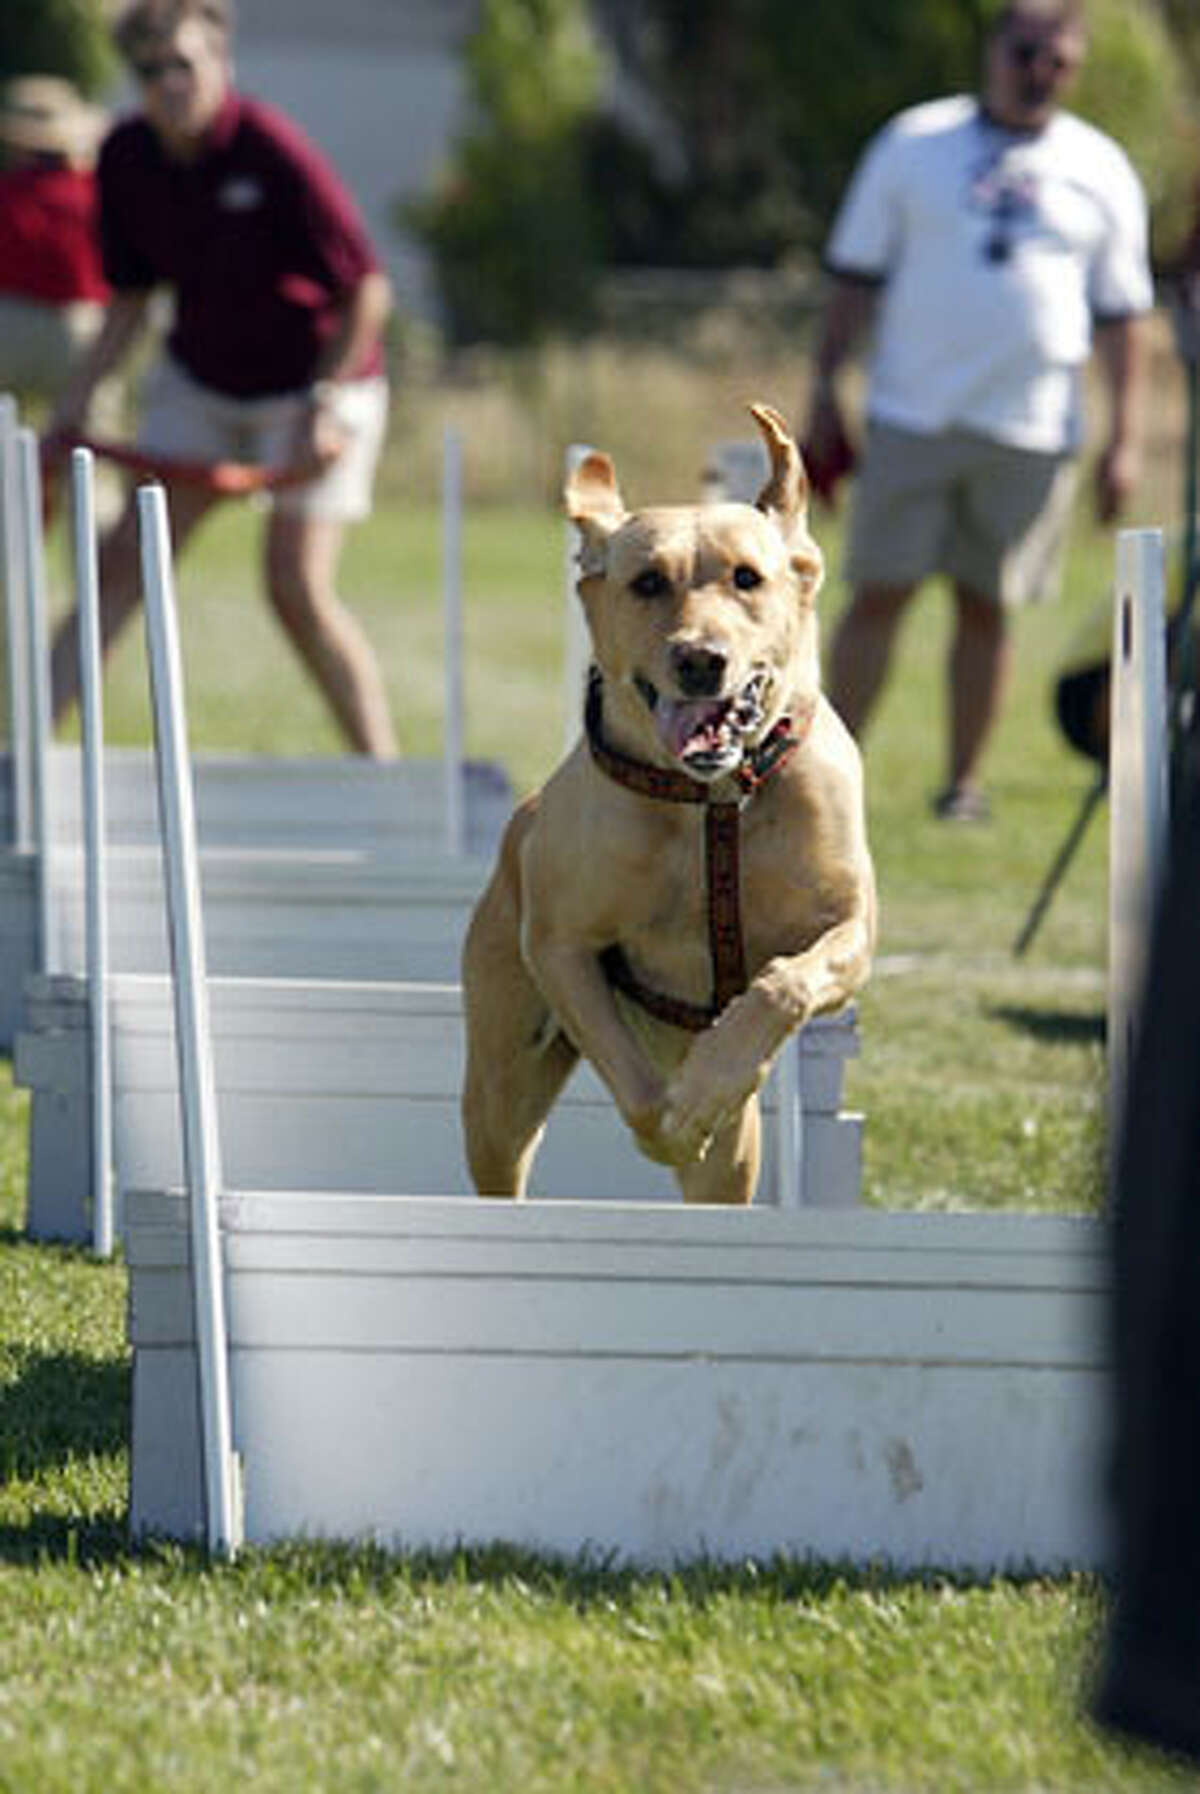 Zoe photo - Acrobat dogs that will be performing at the Pet Adoption Fair in Marin in September 9 & 10. Credit: Handout